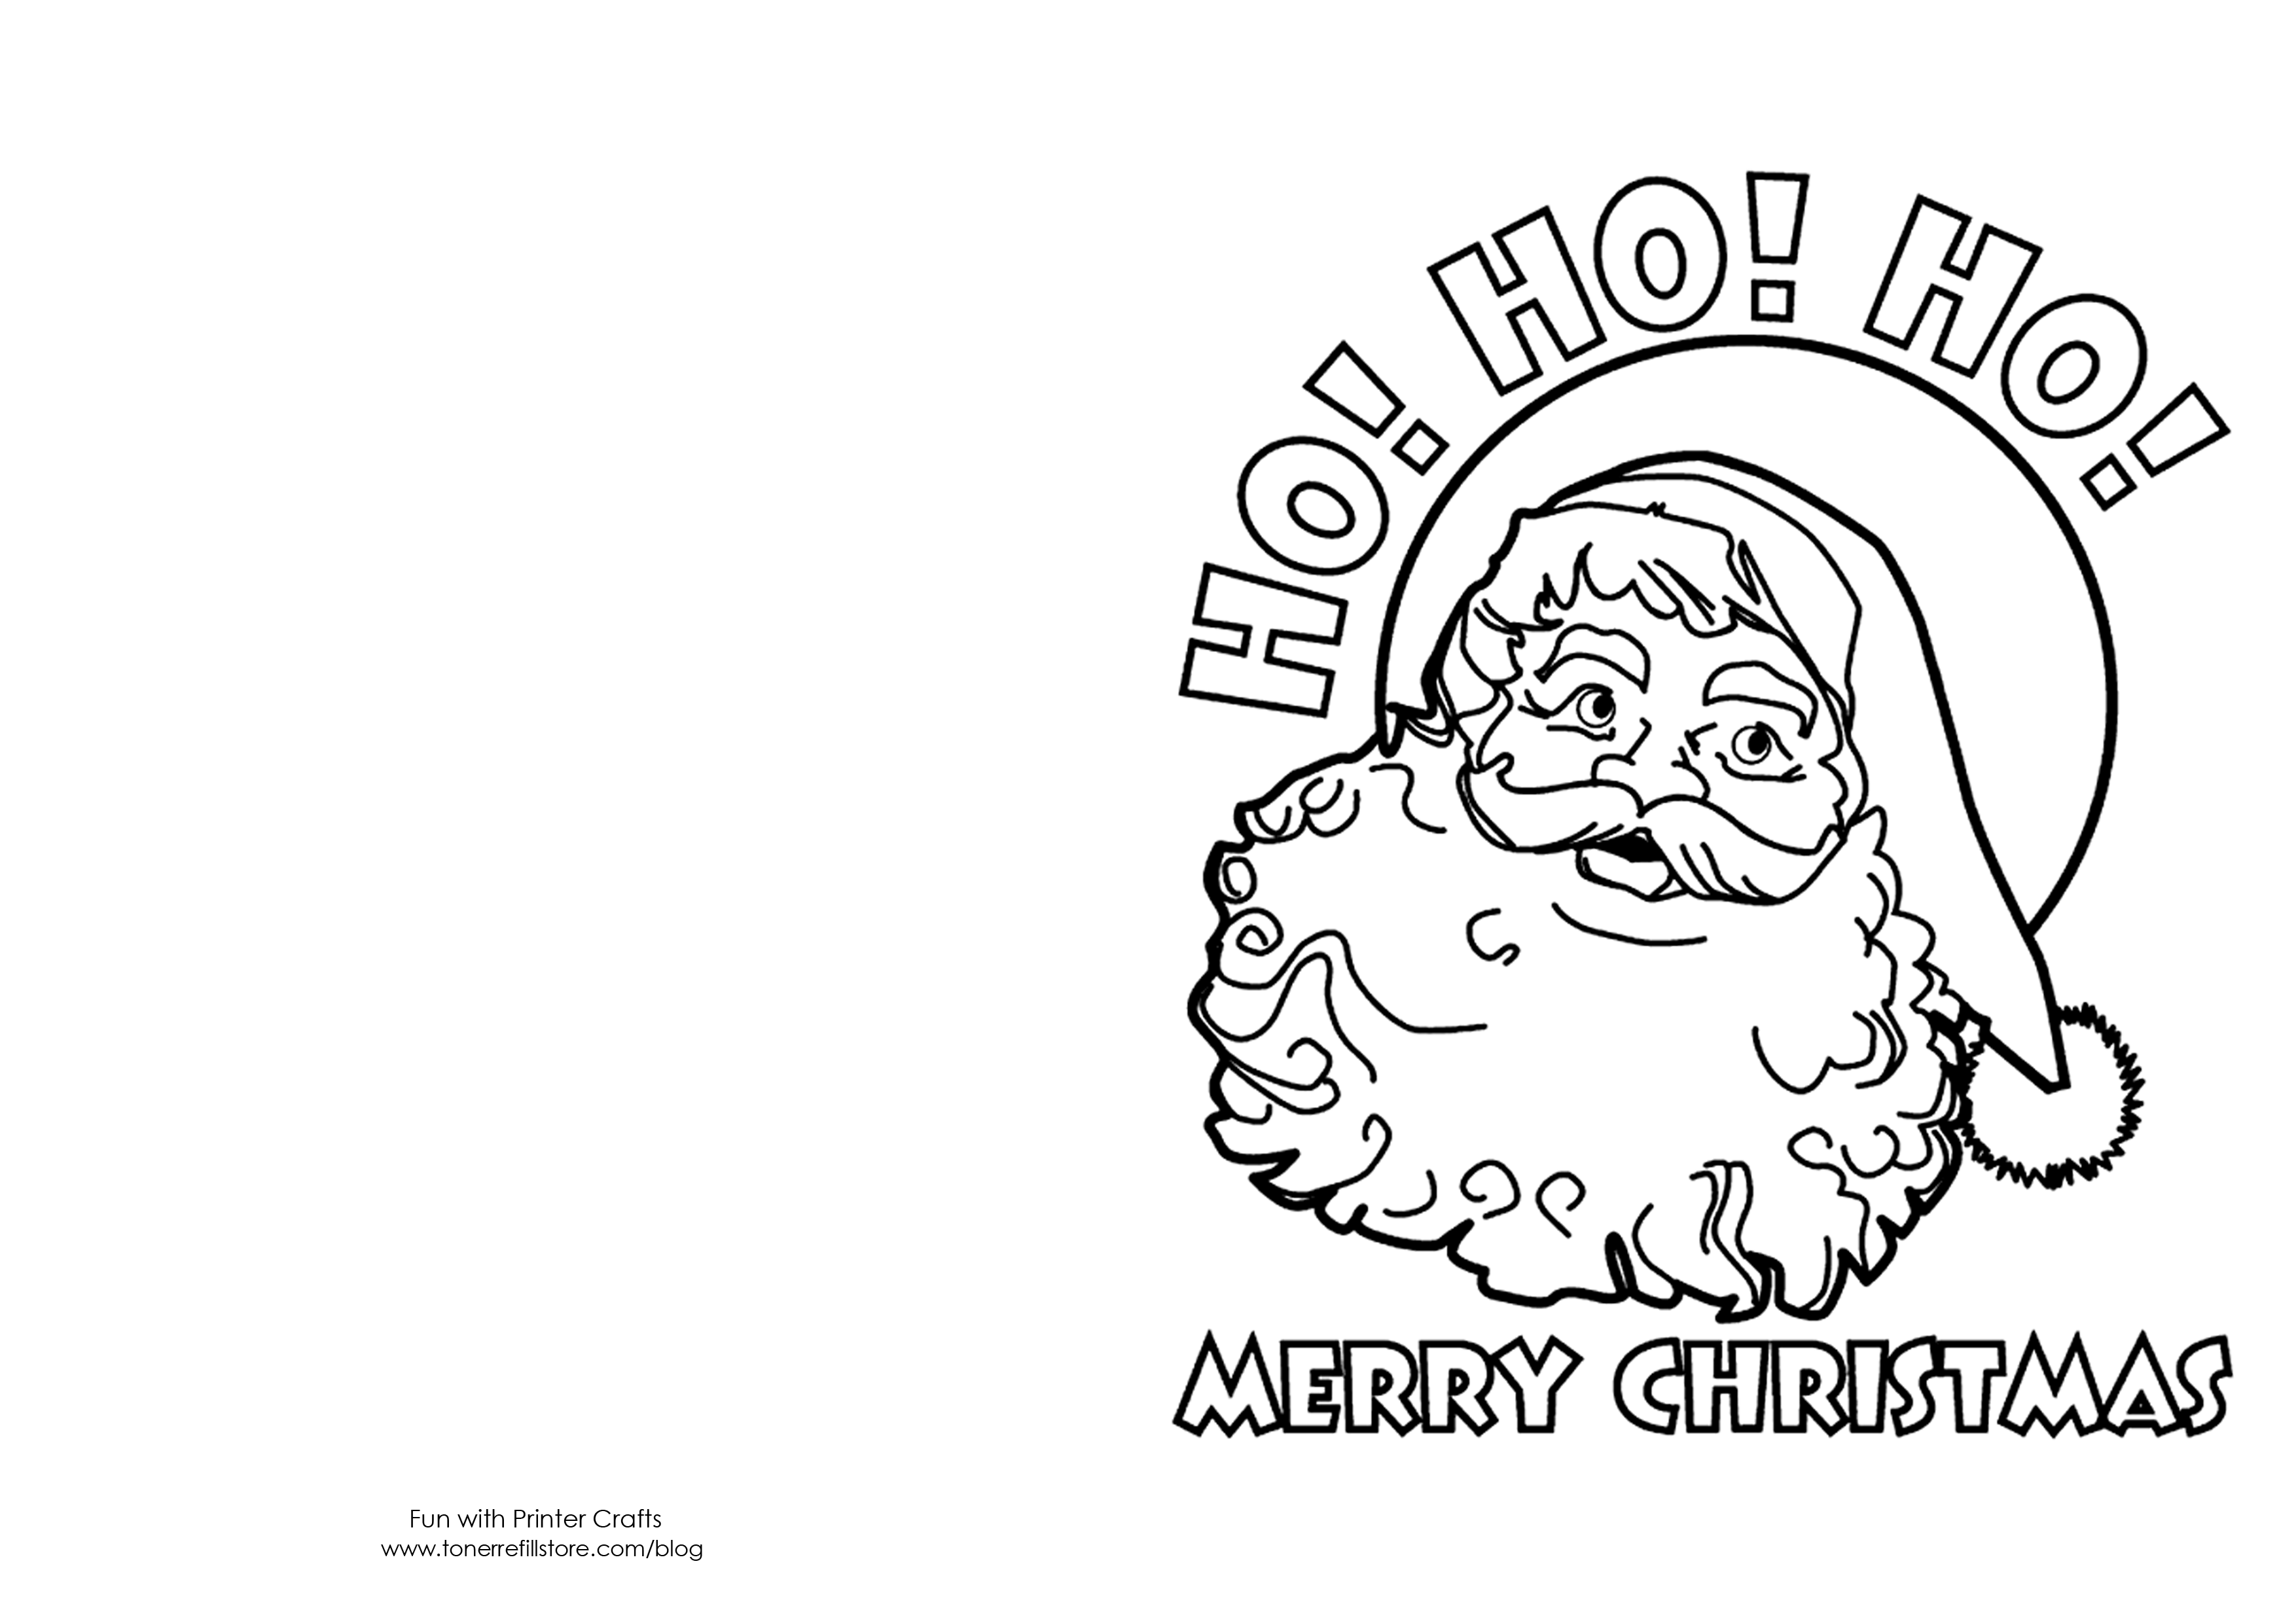 colouring templates christmas 5 christmas coloring pages your kids will love christmas templates colouring